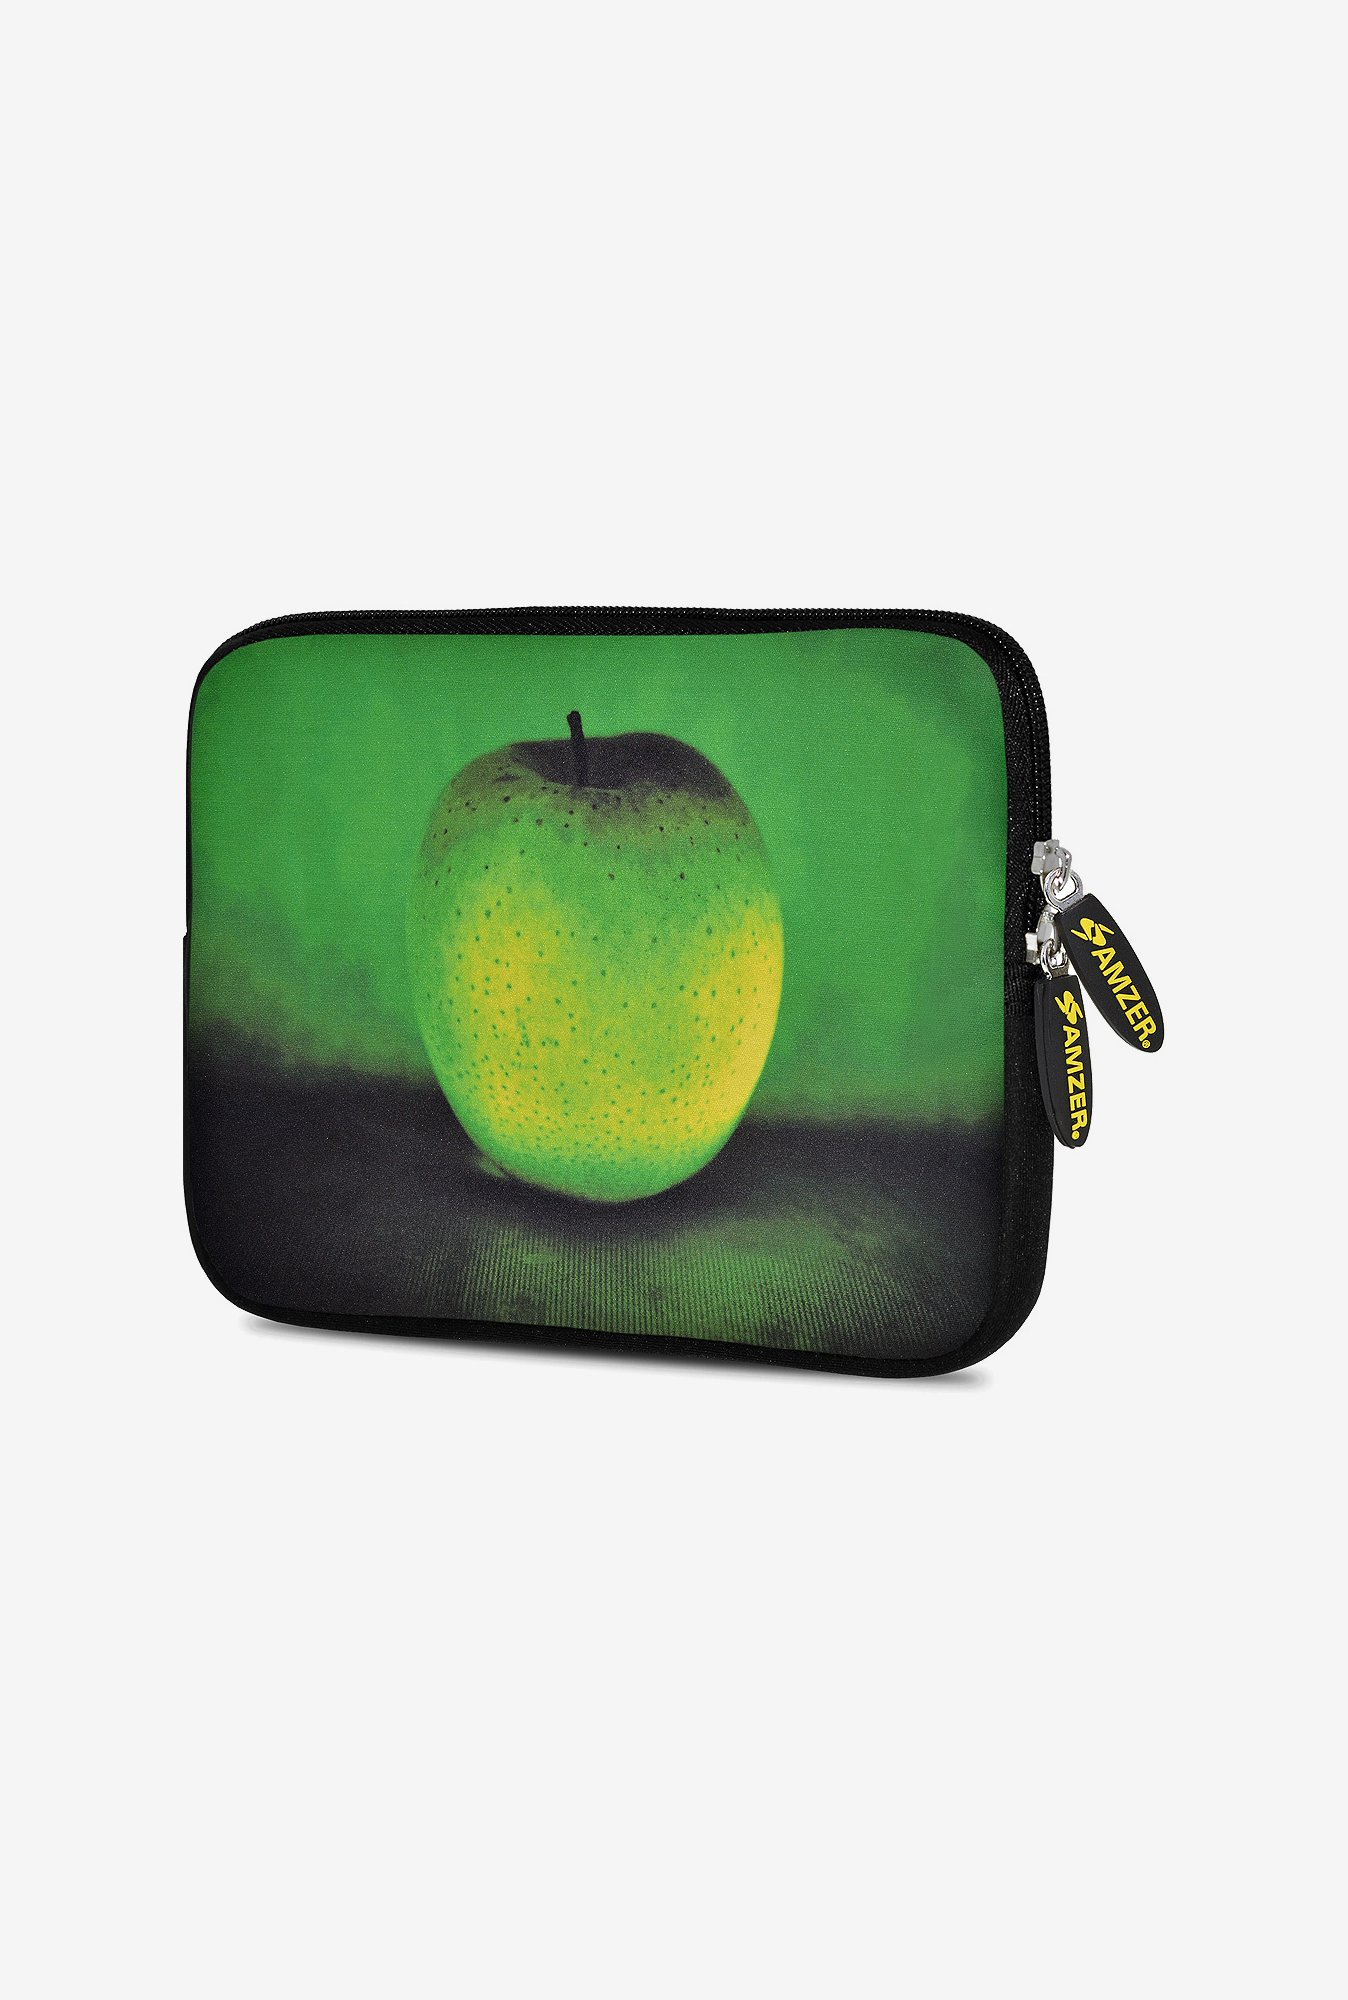 Amzer 10.5 Inch Neoprene Sleeve - Lonely Apple